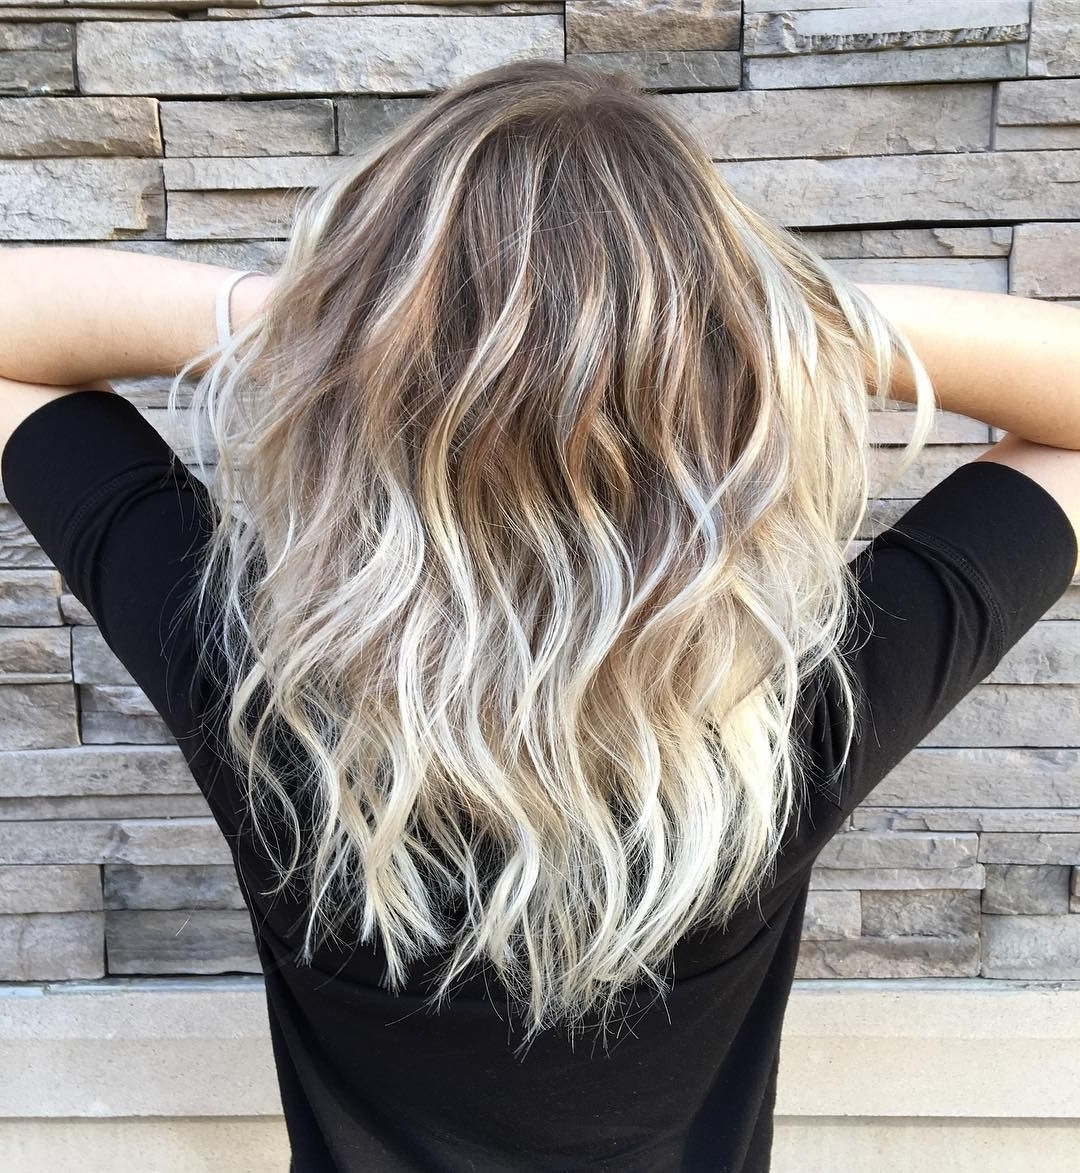 Hair Regarding Most Popular Blonde Color Melt Hairstyles (View 12 of 20)